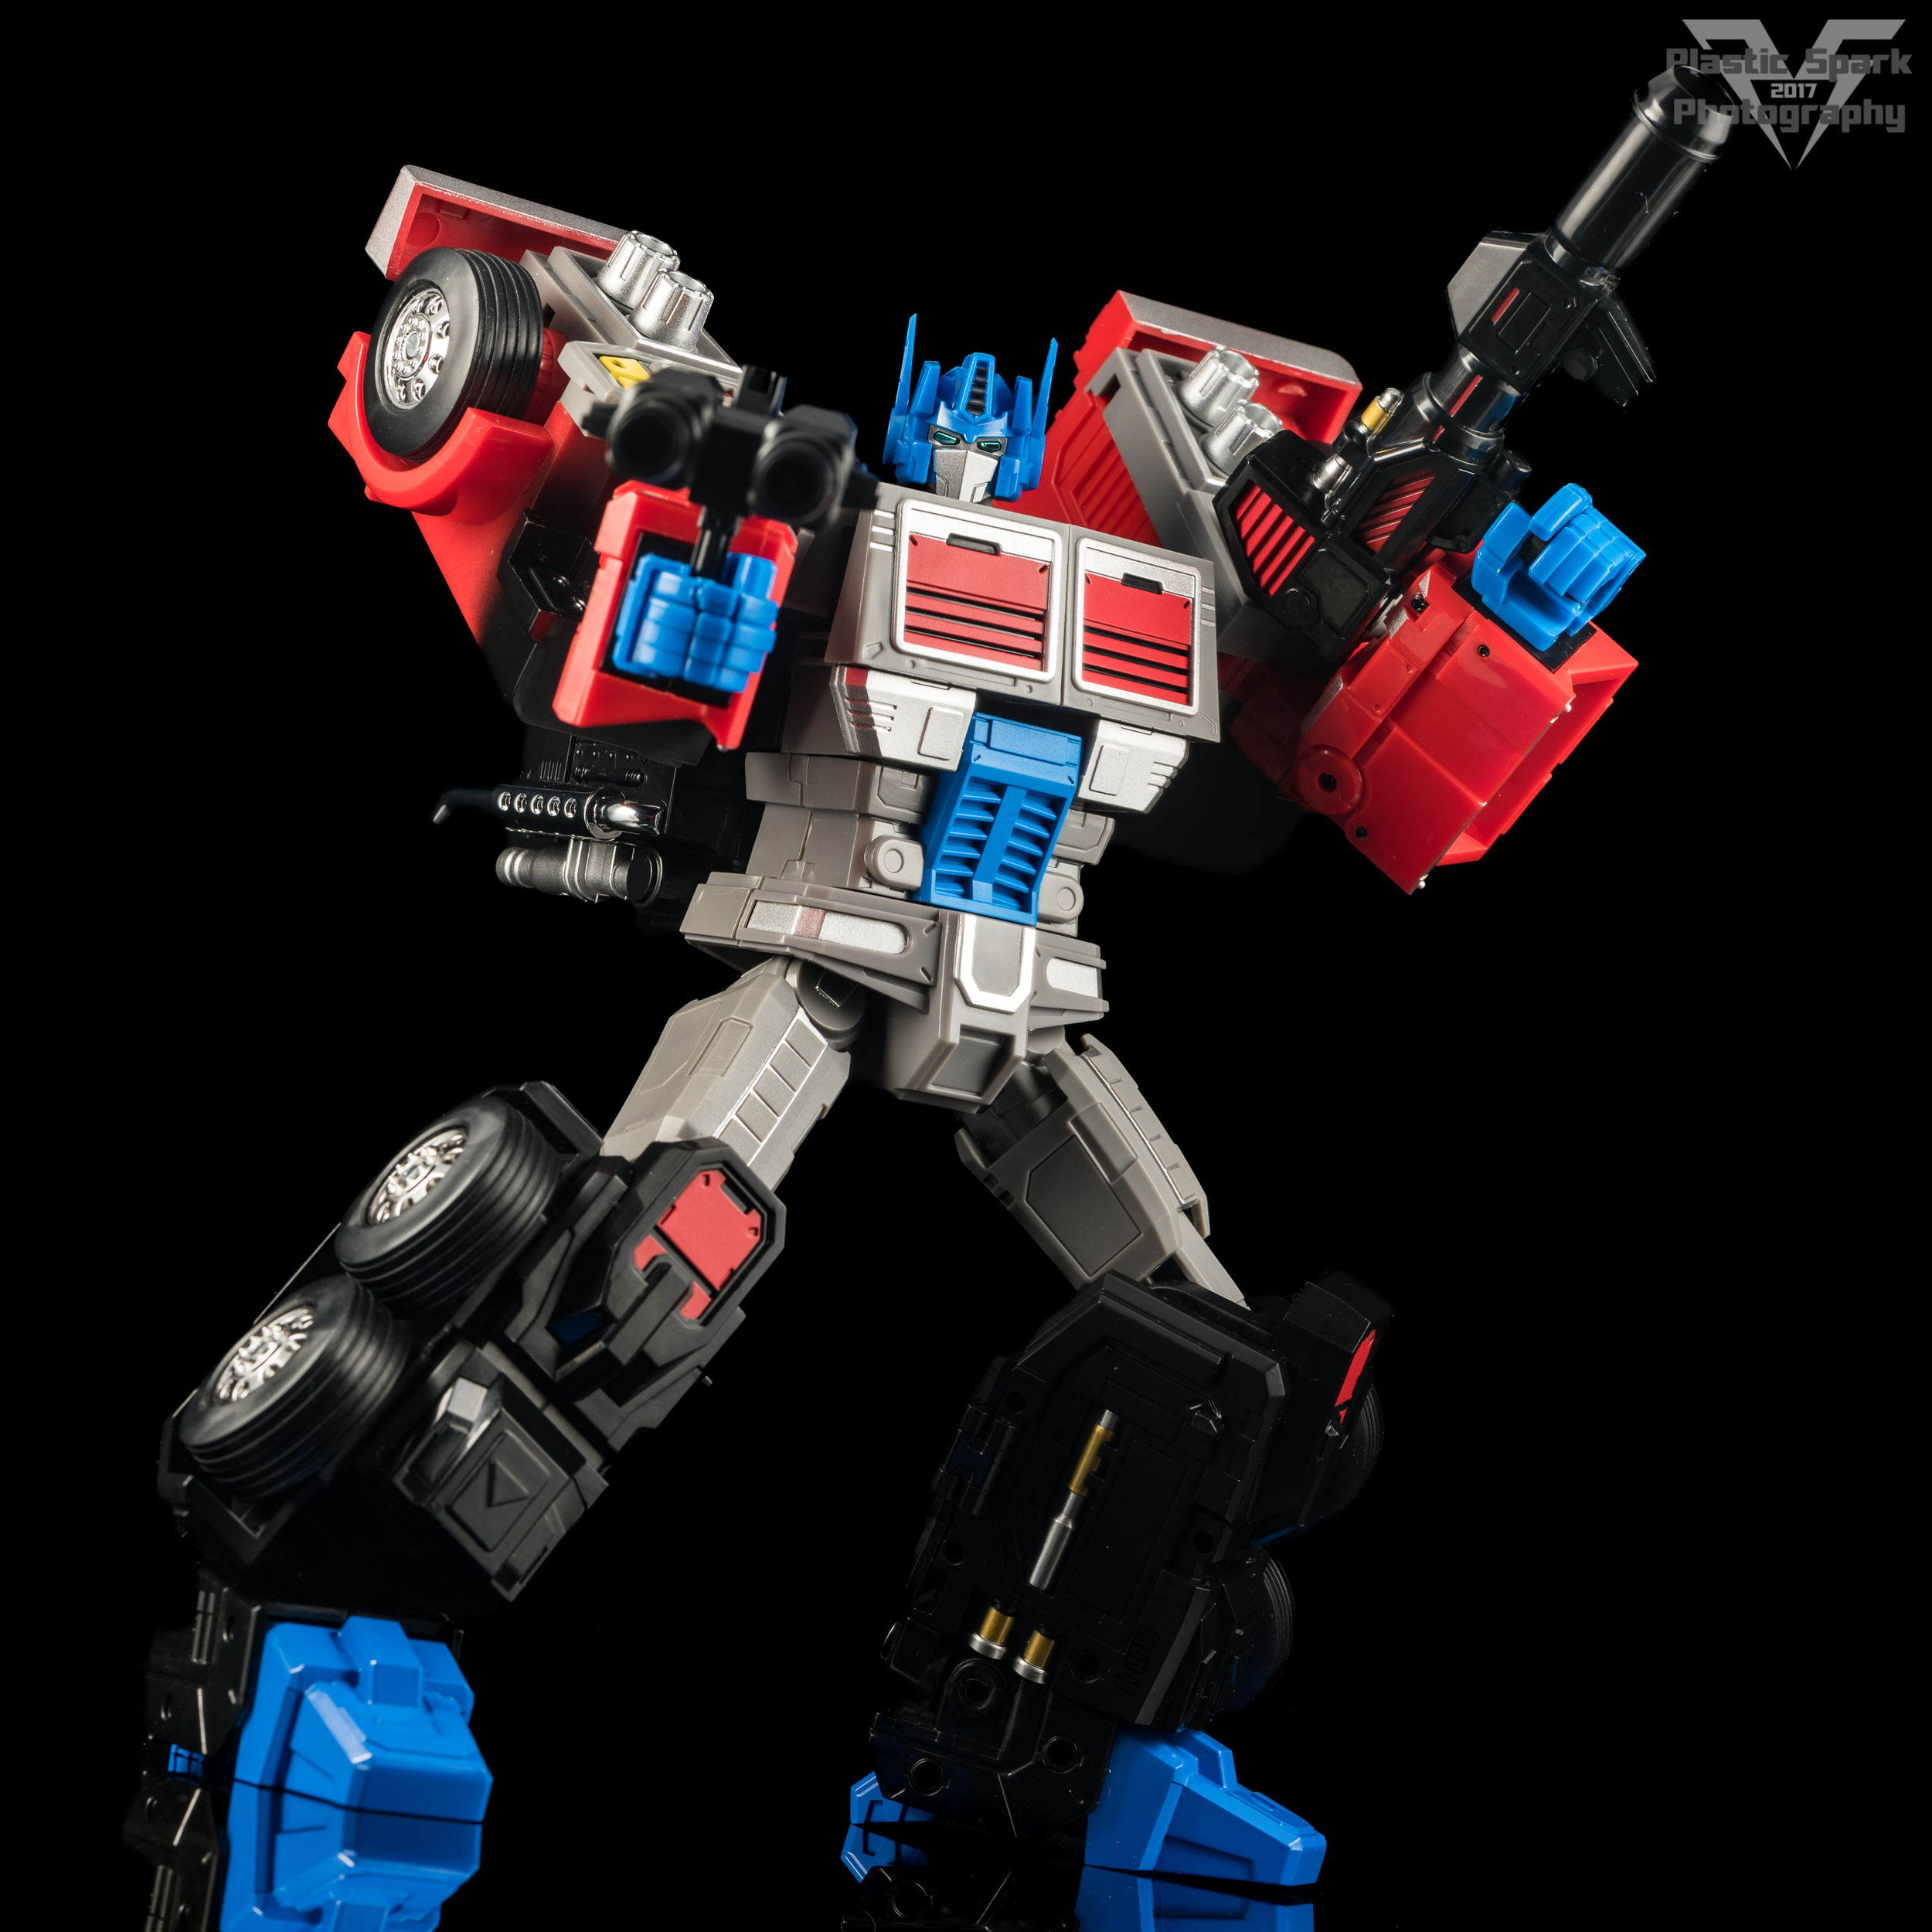 Fans-Hobby-MB-04-Gunfighter-II-(47-of-61).png